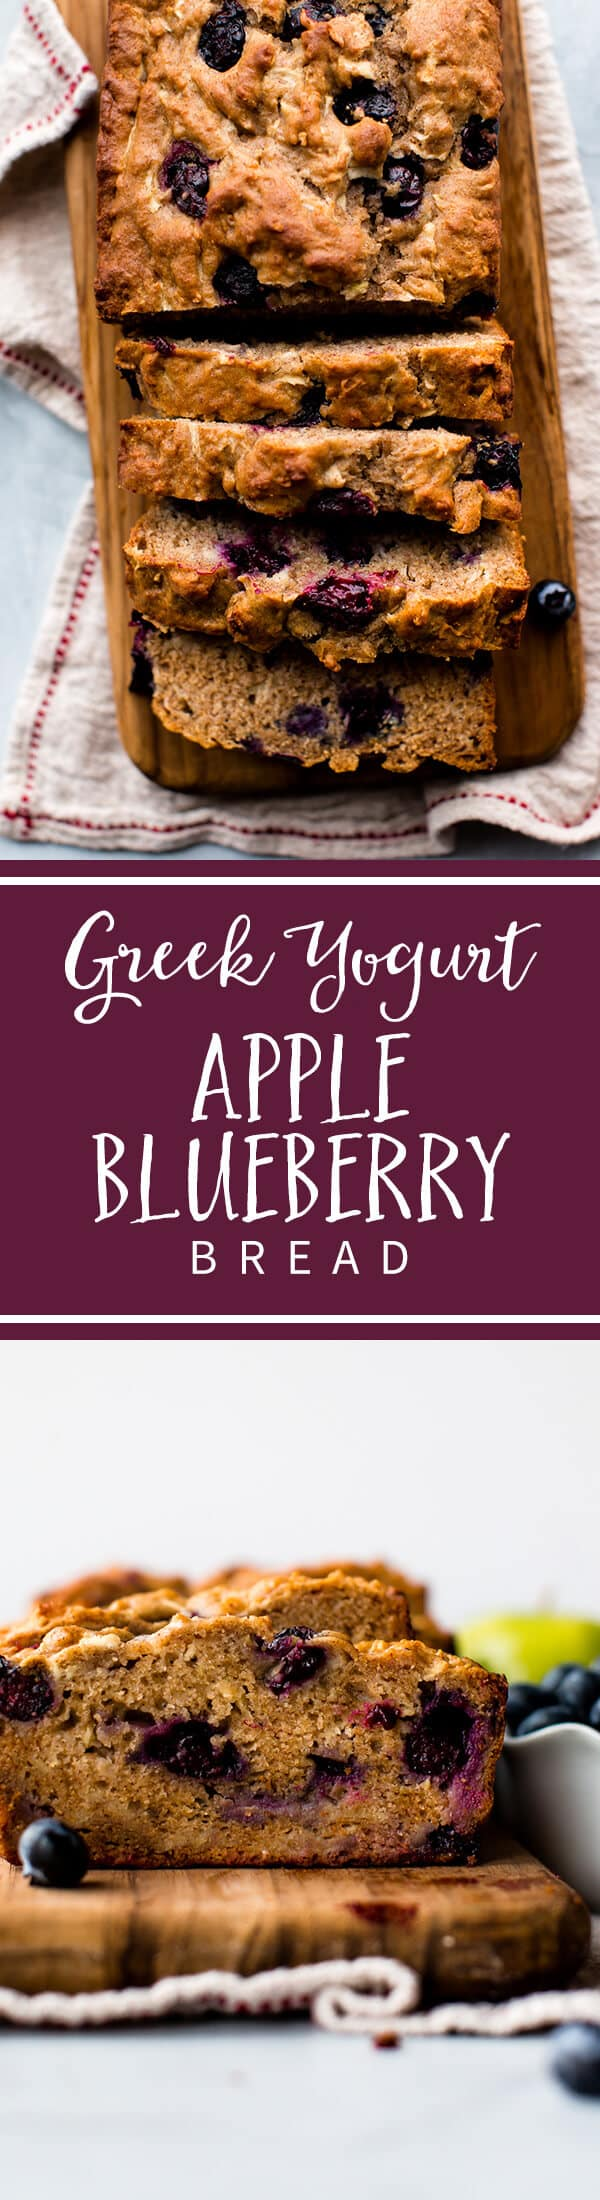 Hearty, healthy, and flavorful greek yogurt apple blueberry bread is delicious any time of day! Recipe on sallysbakingaddiction.com